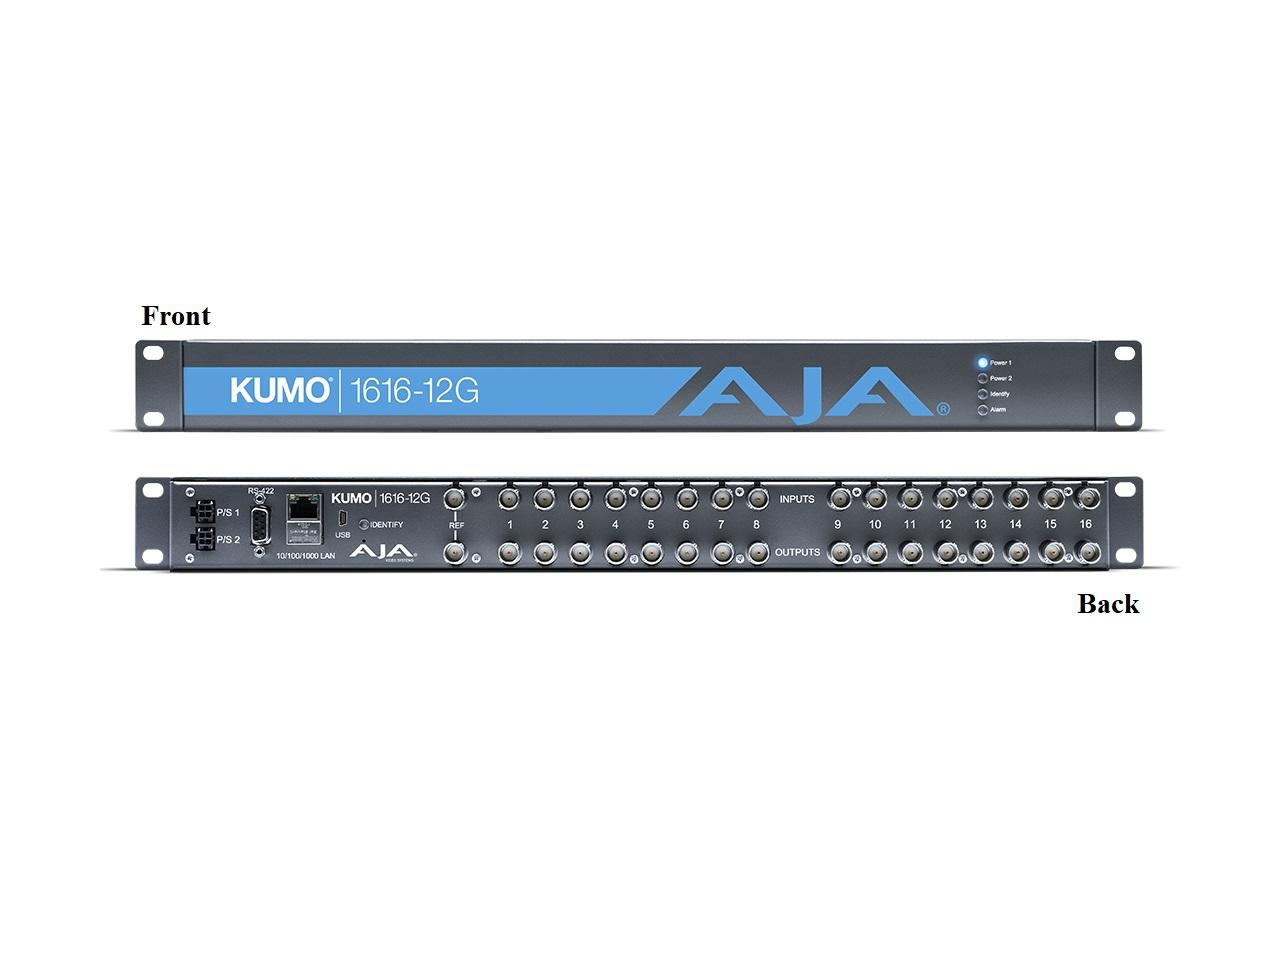 KUMO 1616-12G Compact 16x16 12G-SDI Router by AJA